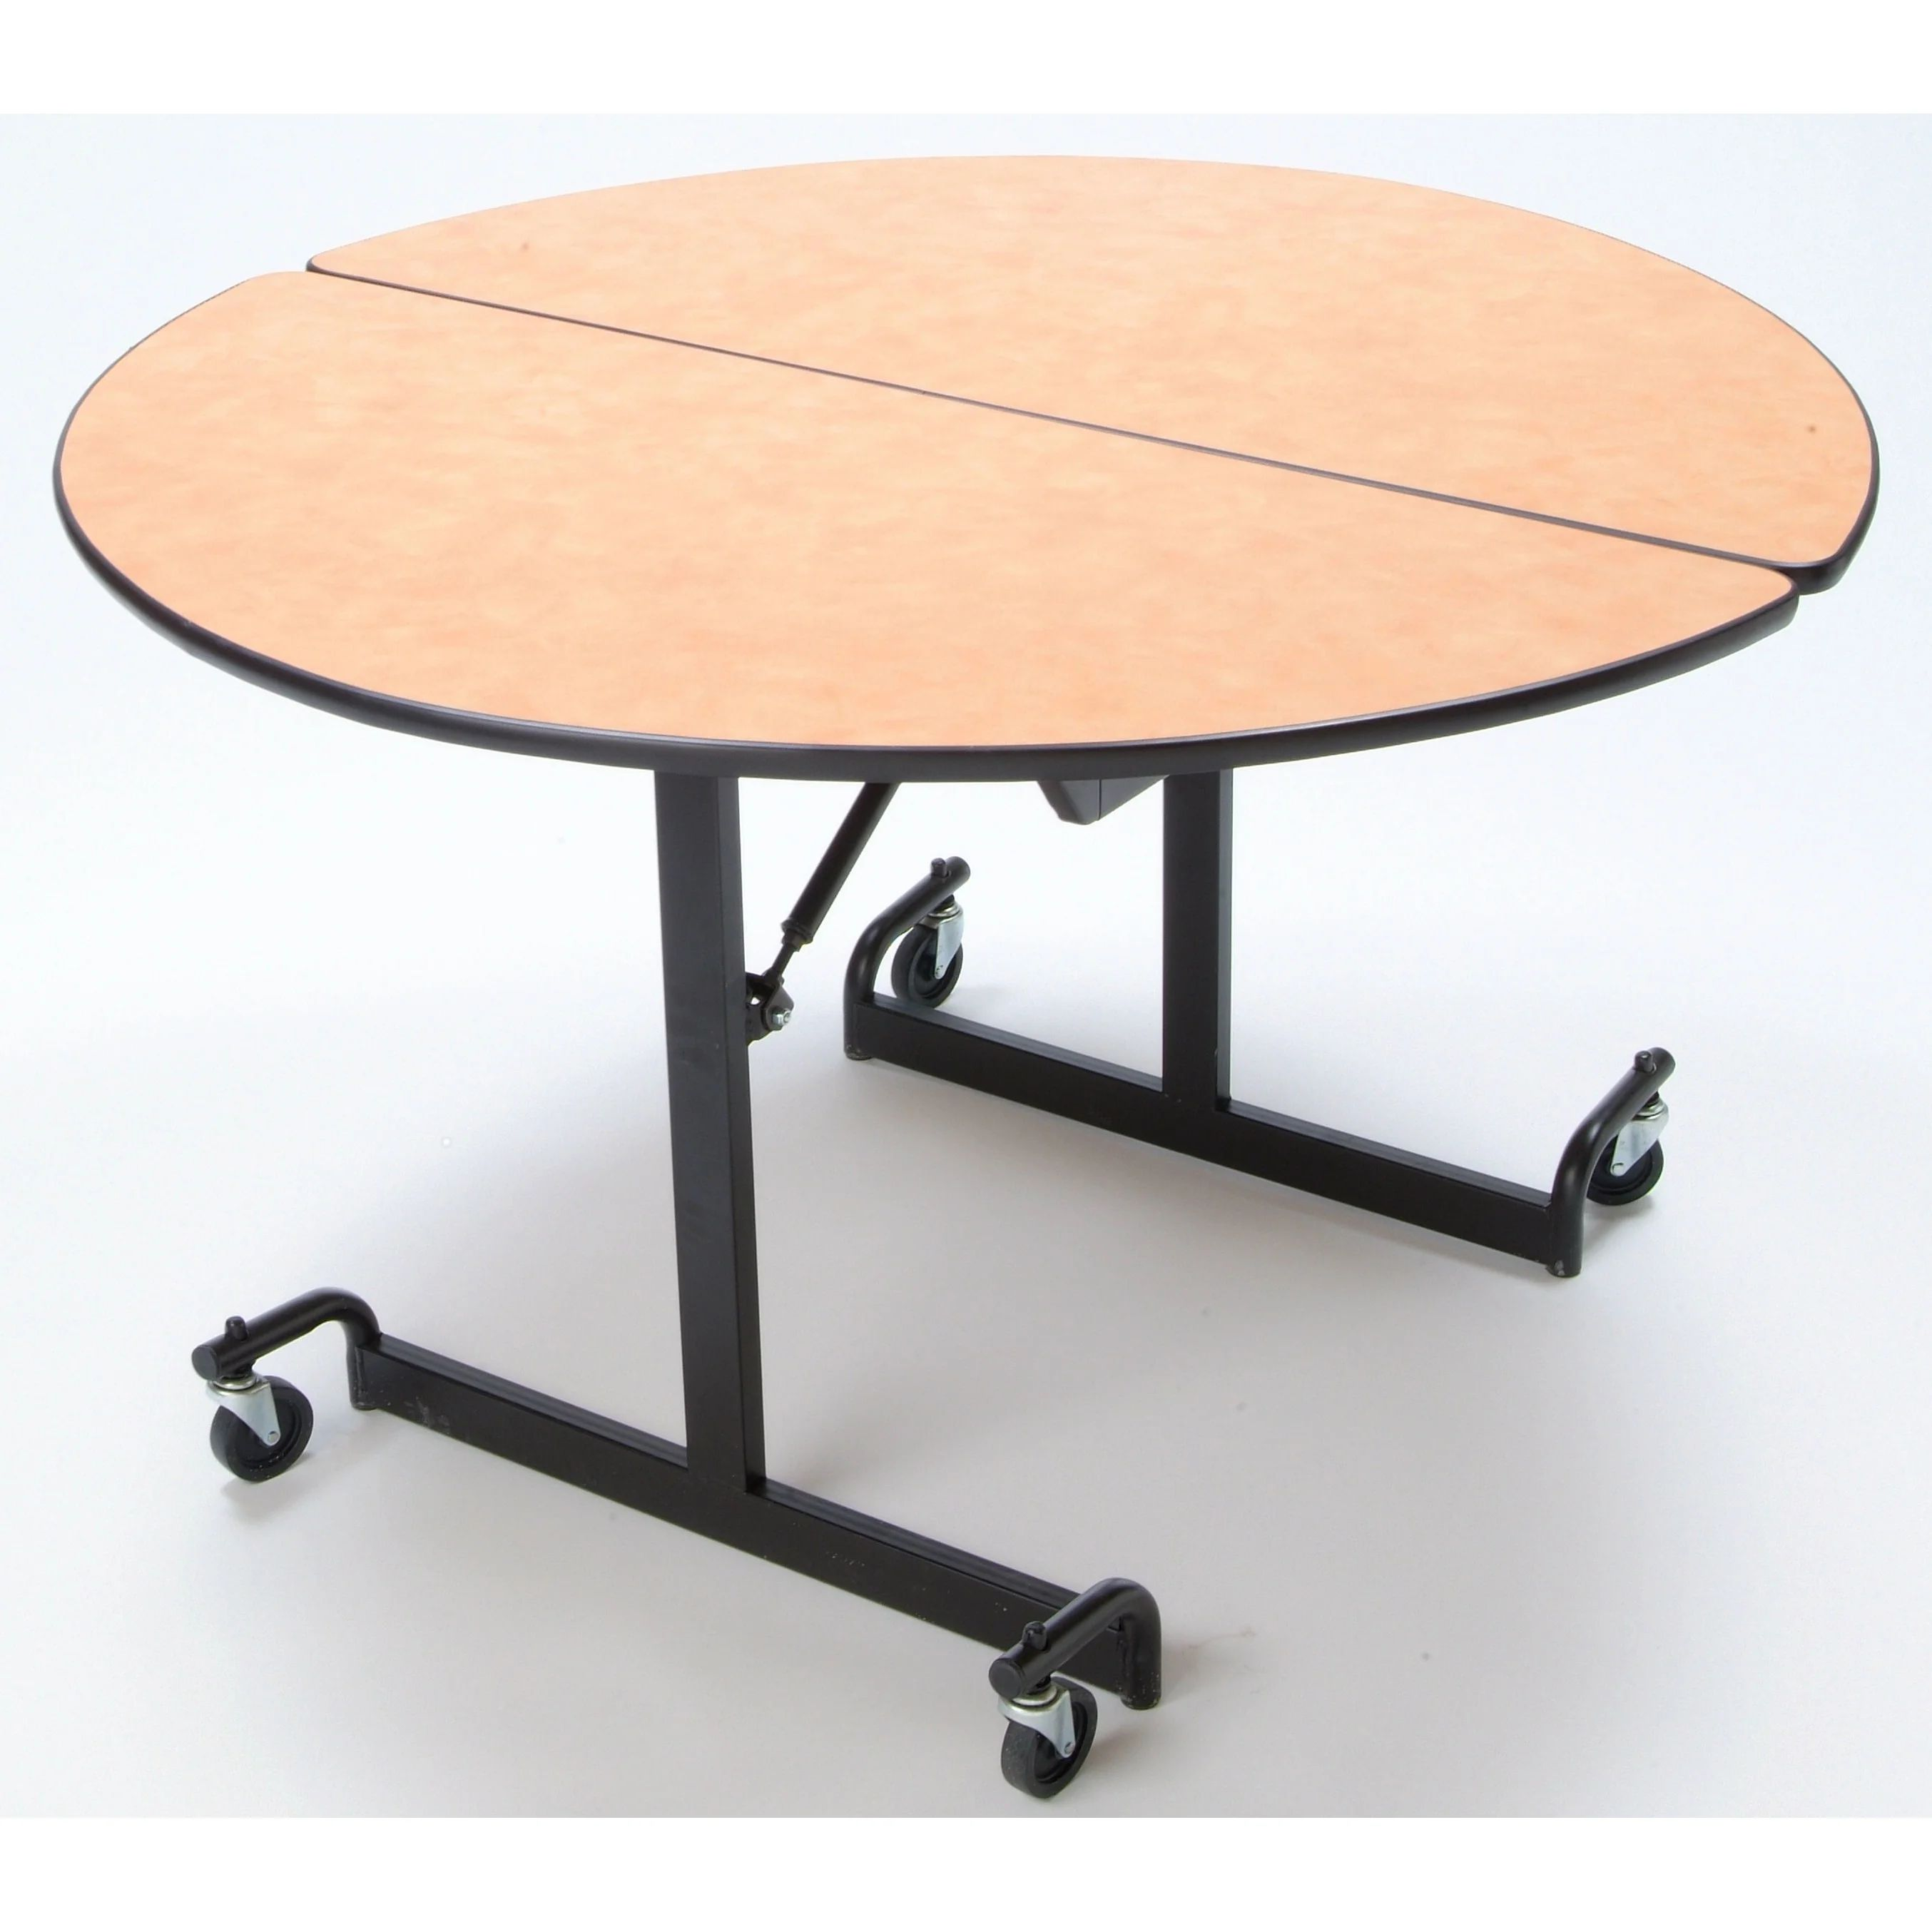 Round school table - Round School Lunch Table Round Lunchroom Tables Download